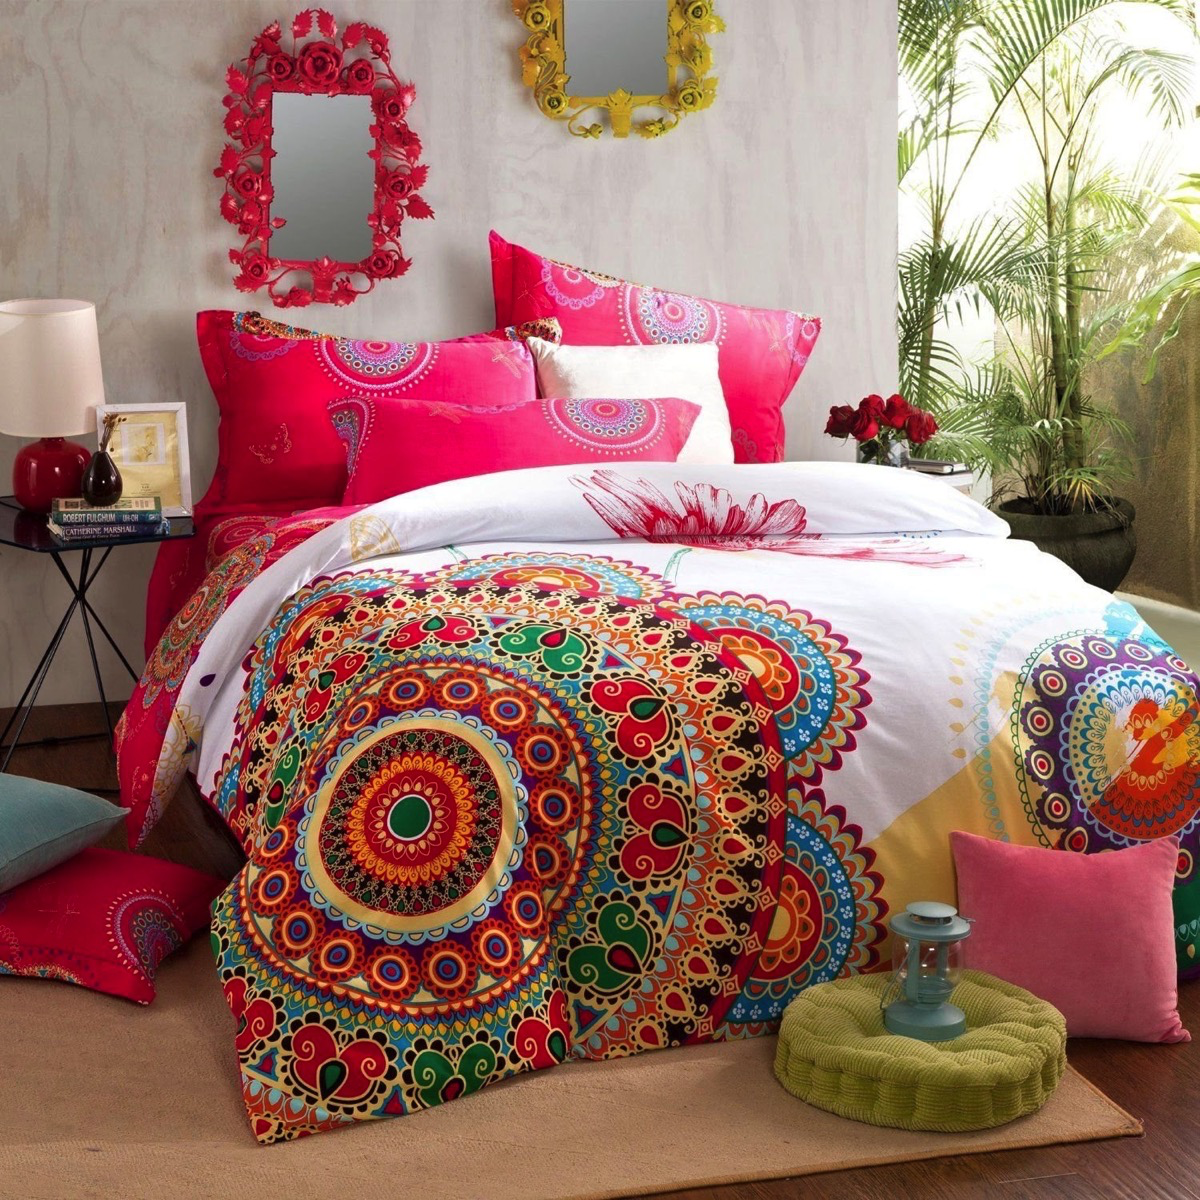 Top 10: Boho Duvets That Will Add A Unique Splash of Color and Fun To Your Bedroom